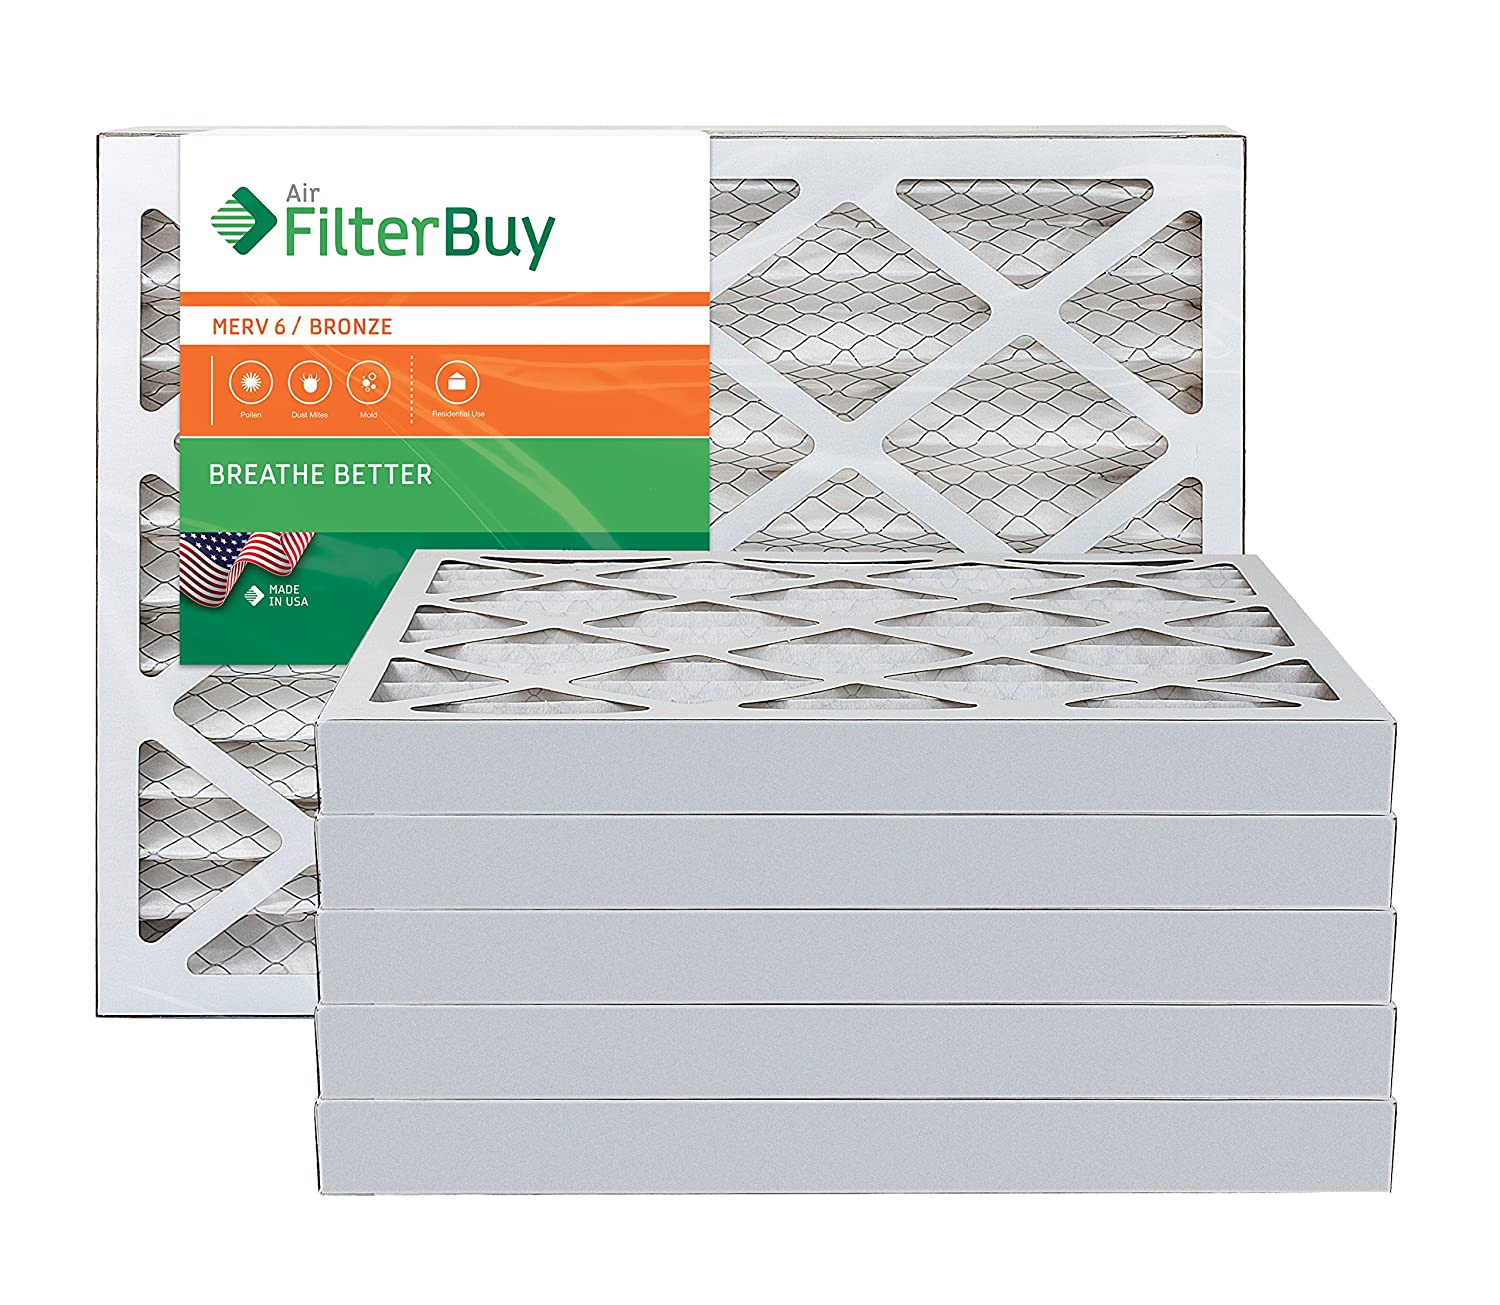 AFB Bronze MERV 6 20x25x2 Pleated AC Furnace Air Filter. Pack of 6 Filters. 100% produced in the USA.